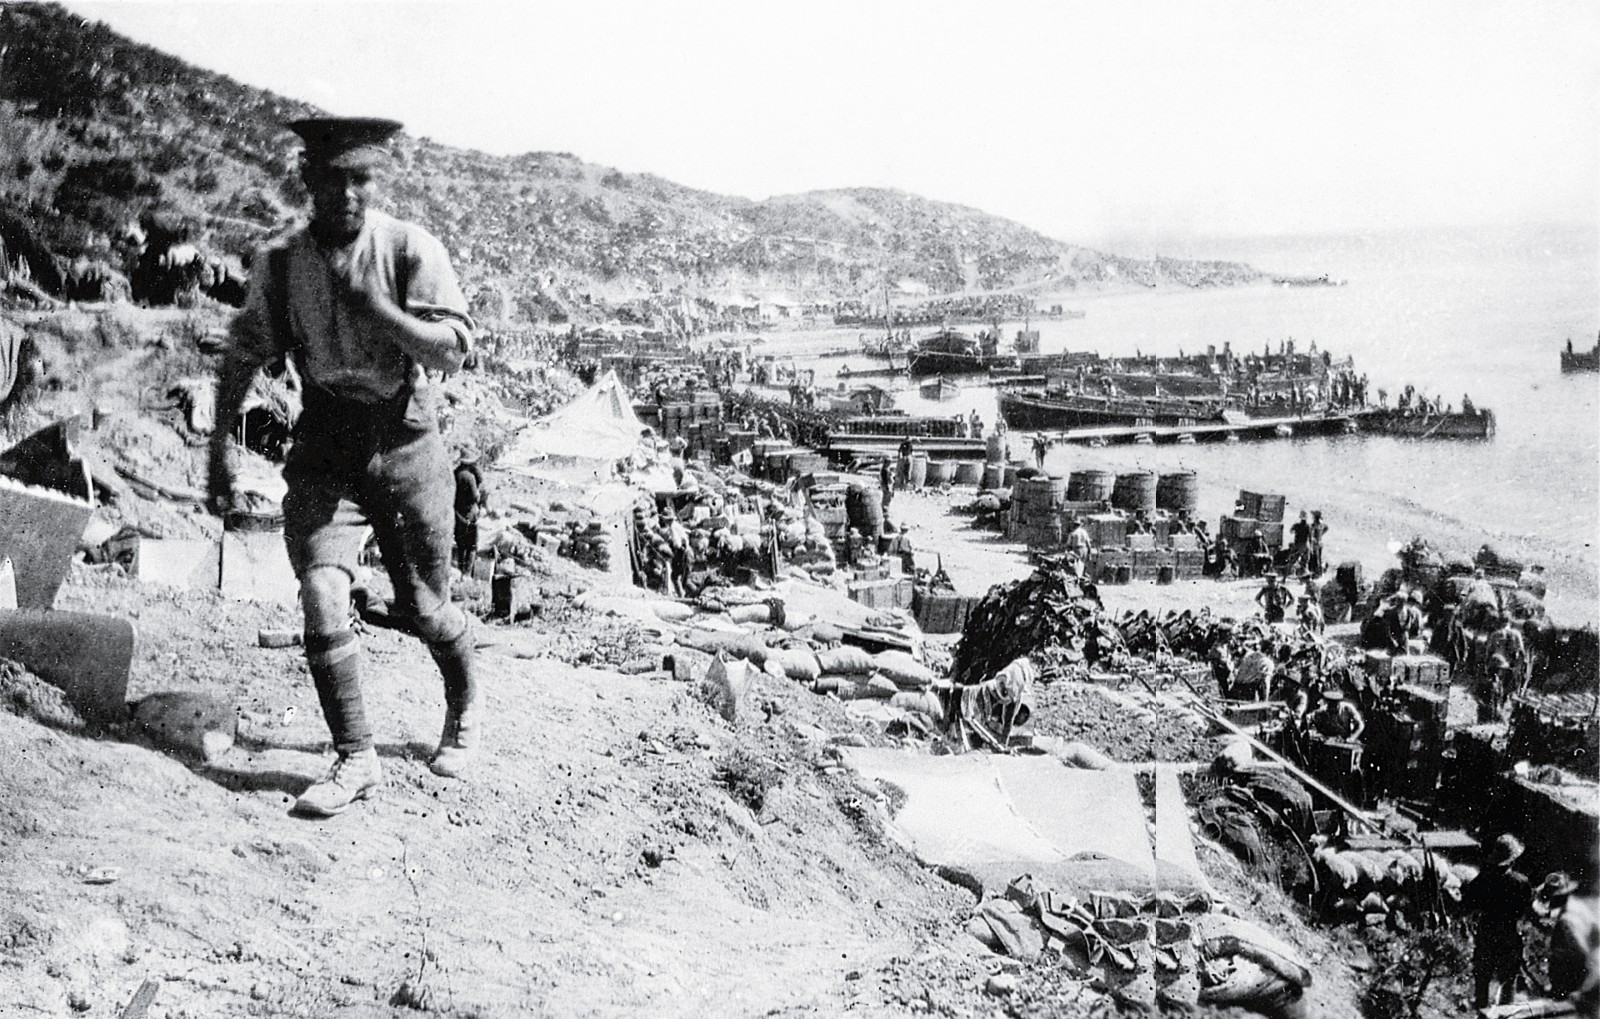 The only way to get reinforcements and supplies, including water, to the beleagured army dug in along the ridges and gullies of Anzac was via the congested beach at Anzac Cove.